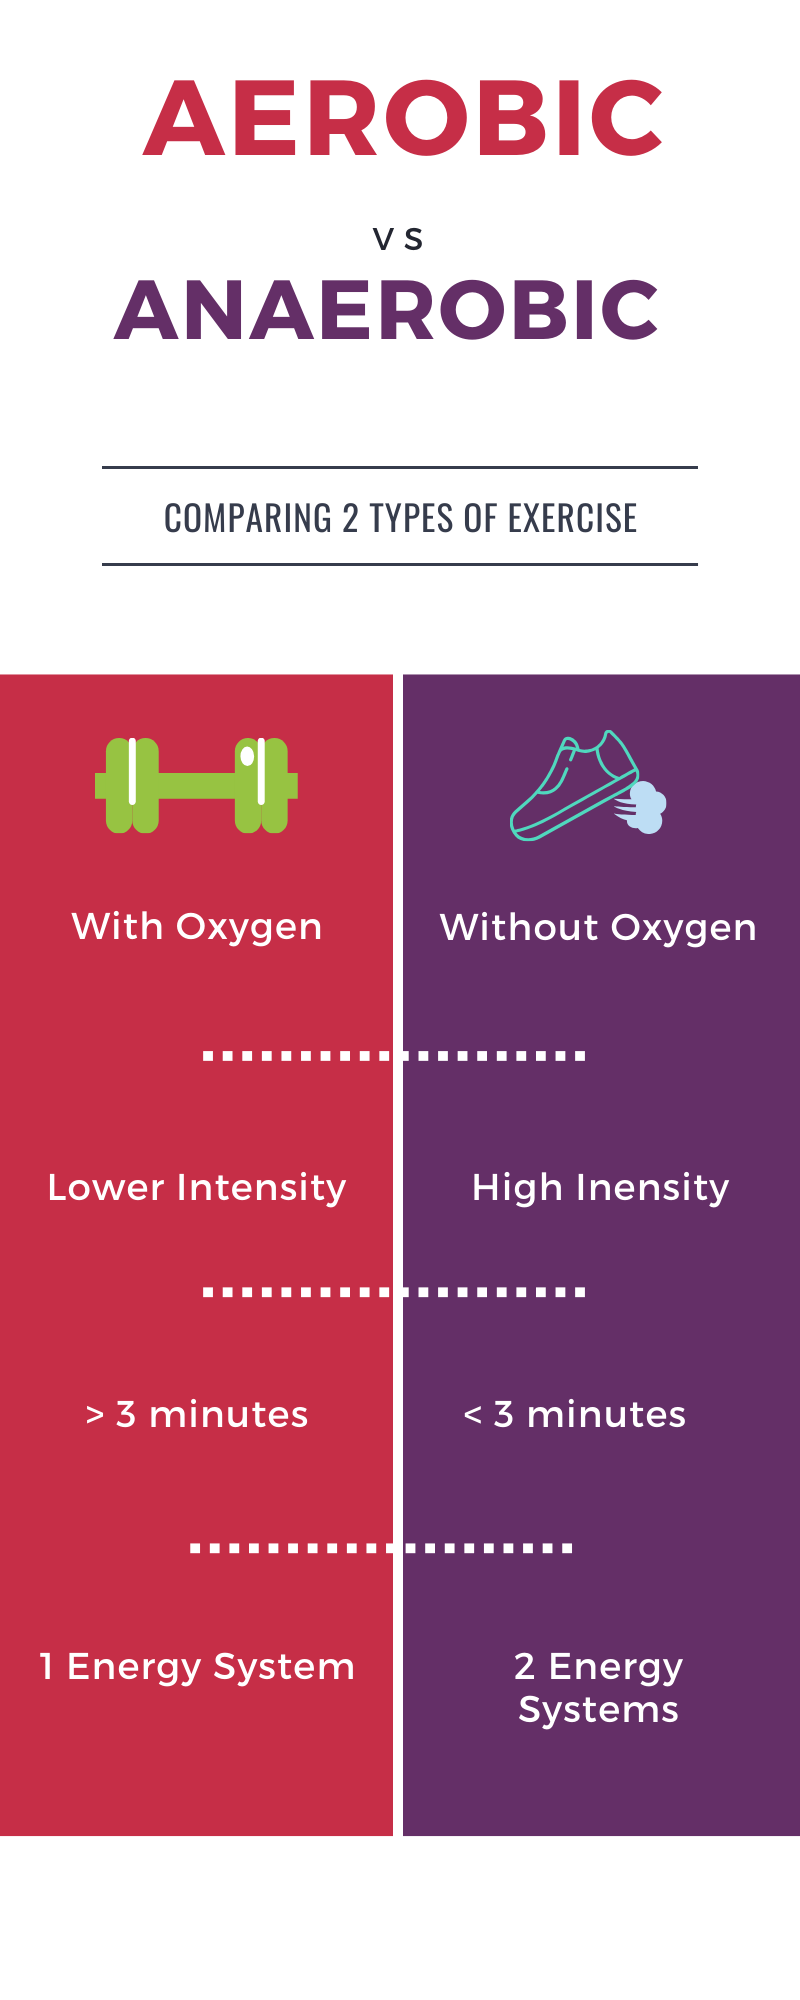 A summary of the differences between aerobic and anaerobic fitness